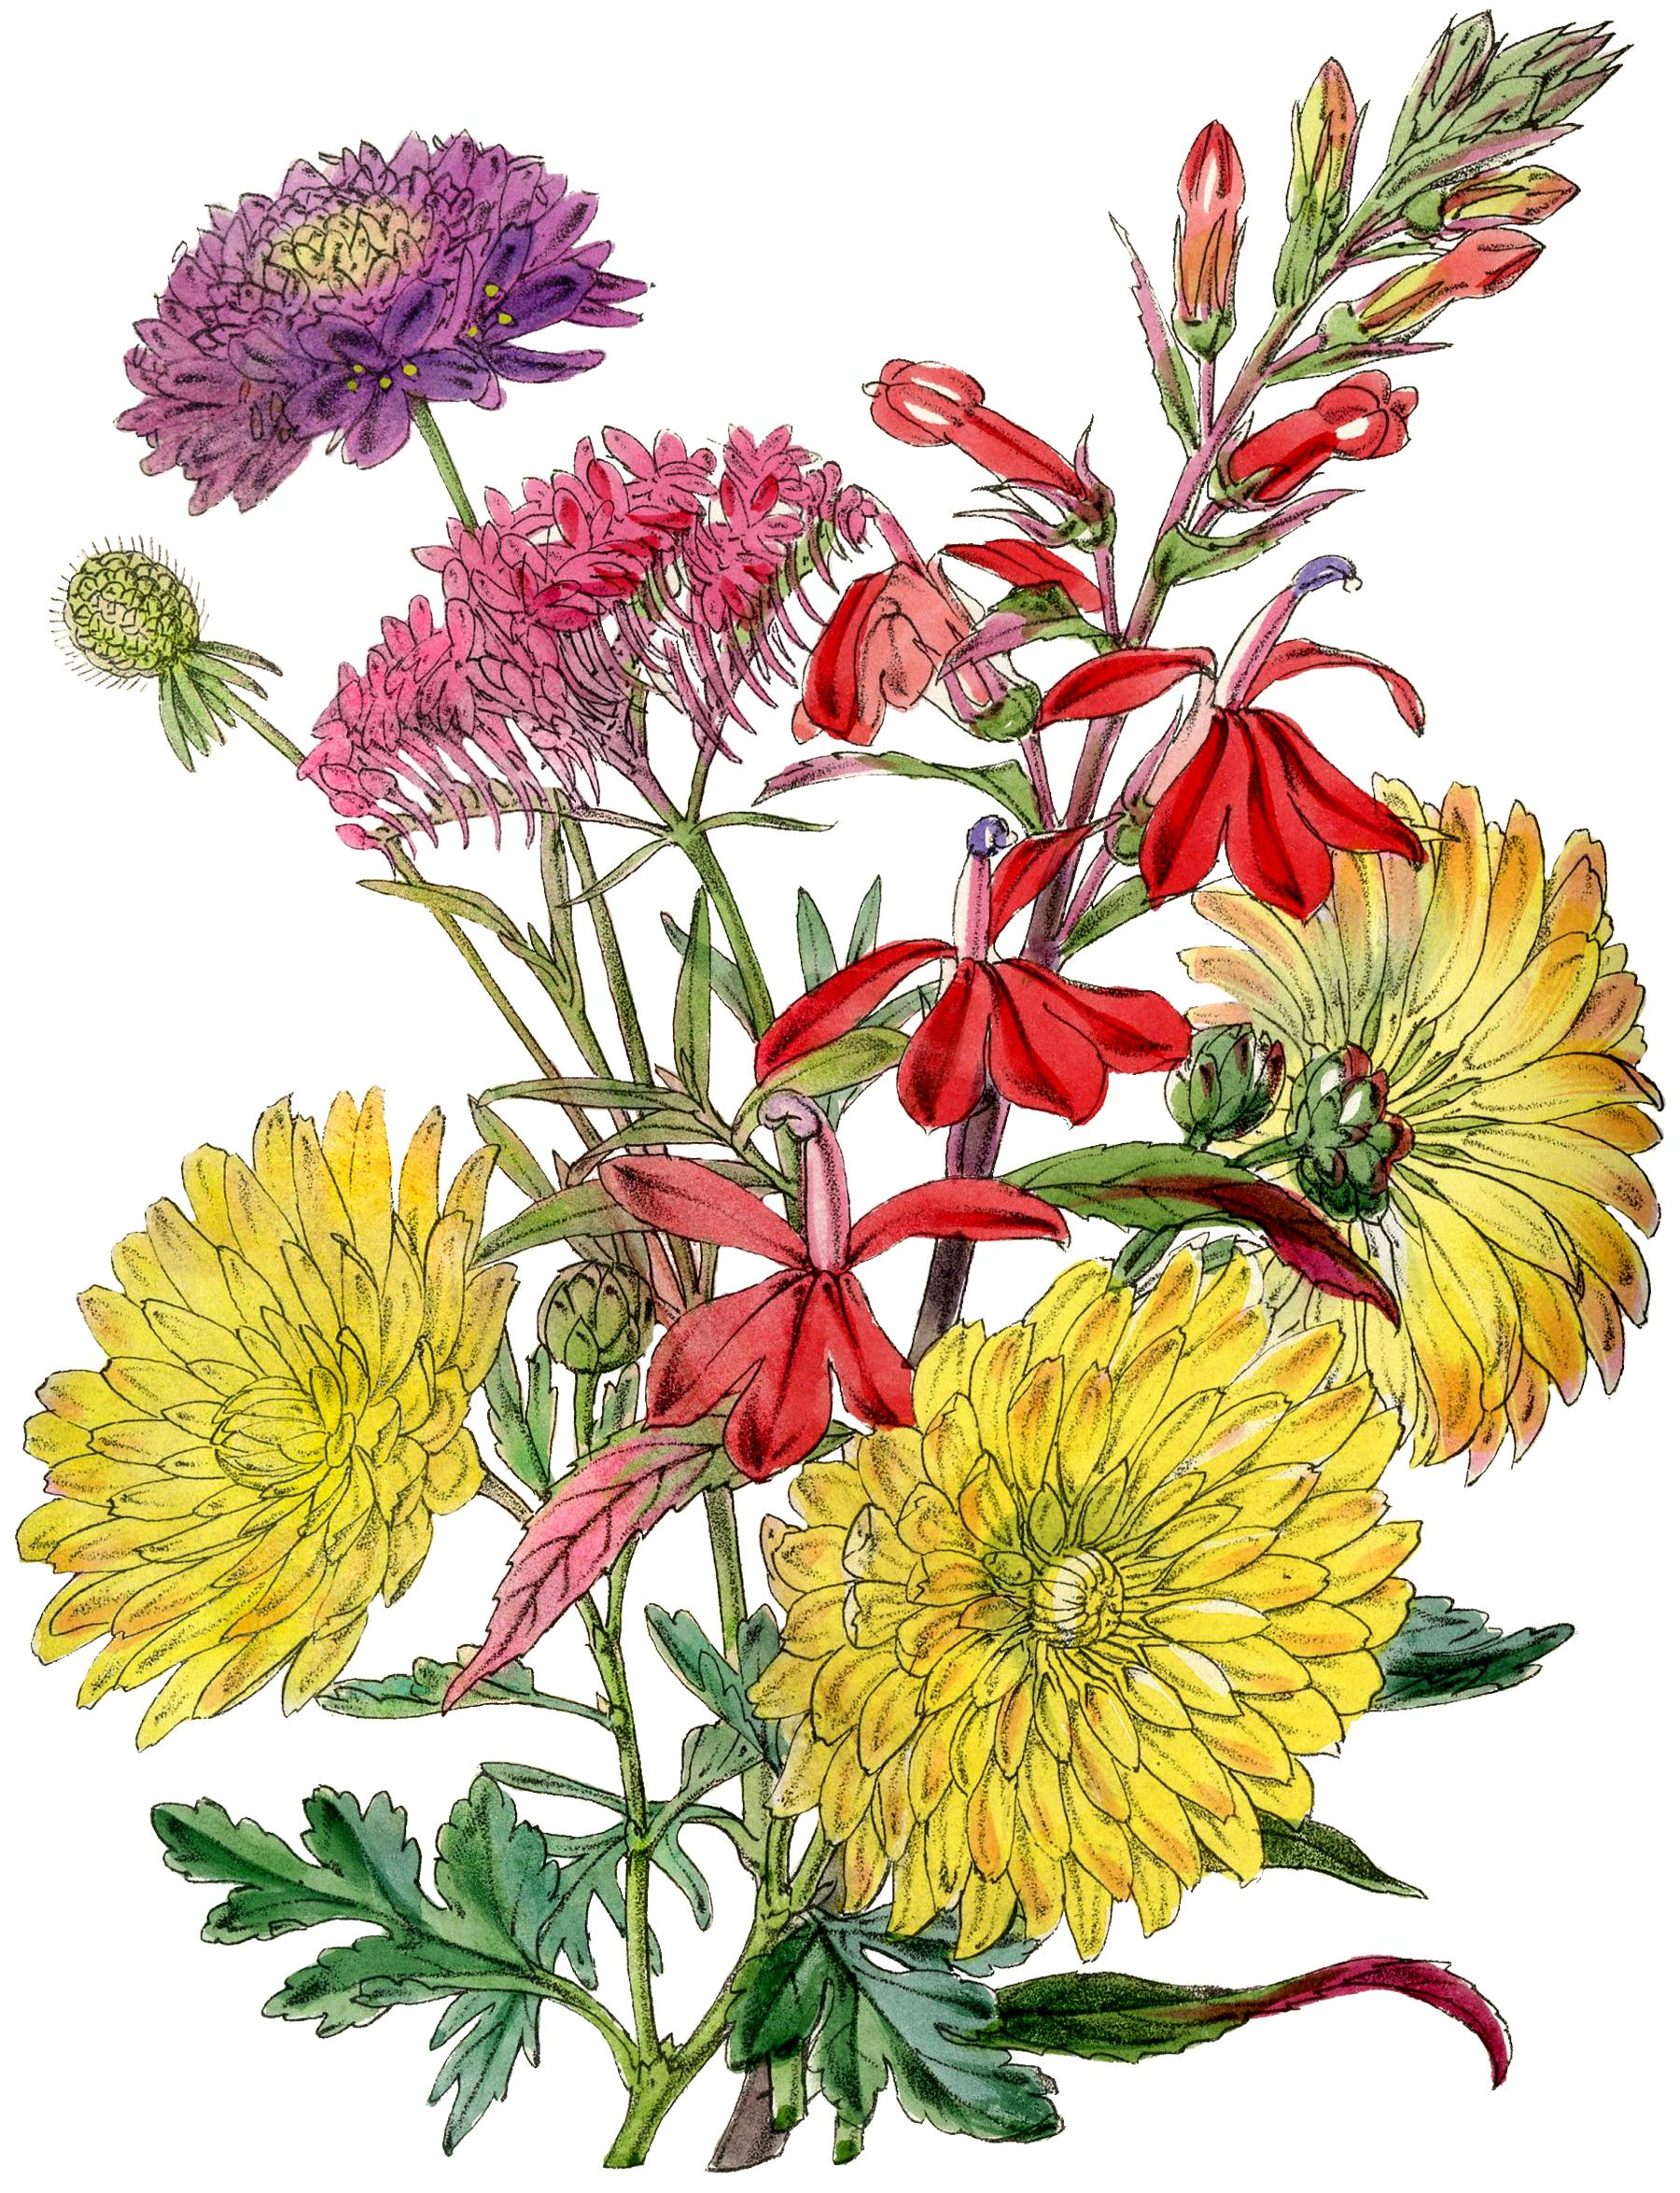 Fall mums clipart image download HD Fall Mums Clip Art Pictures » Free Vector Art, Images, Graphics ... image download